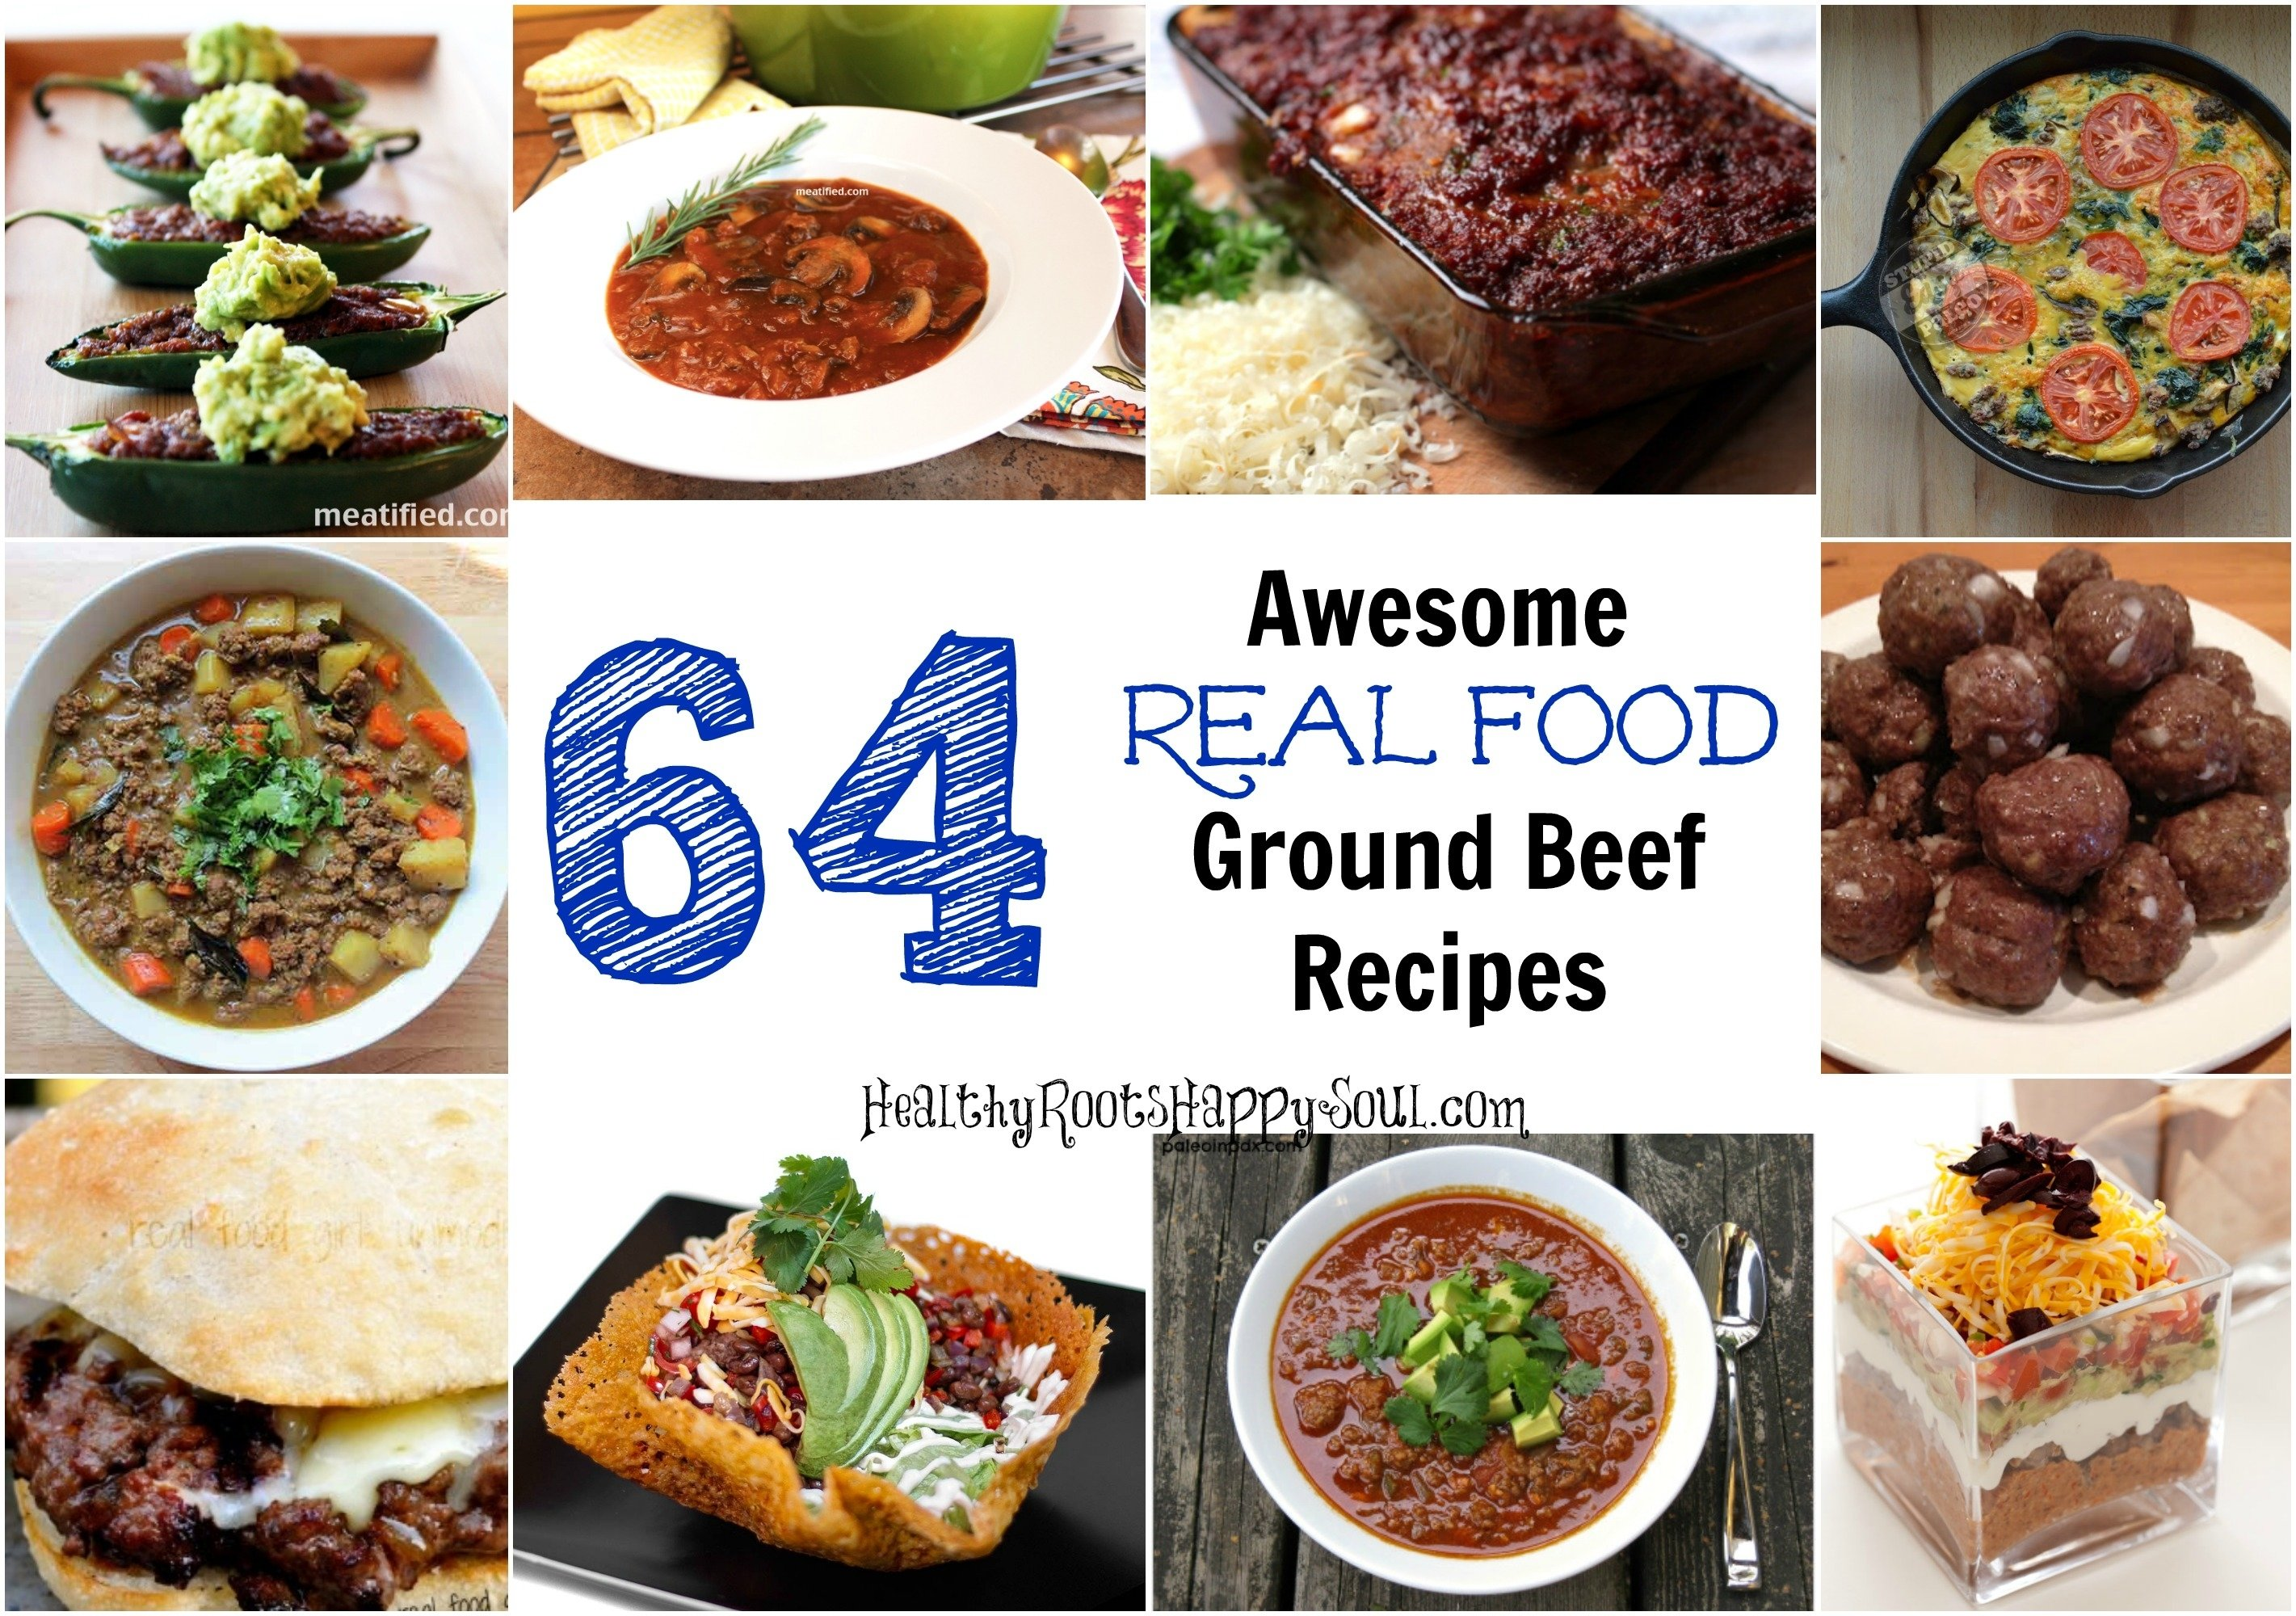 10 Famous Dinner Ideas With Ground Beef naturally loriel 64 awesome real food ground beef recipes 2 2021